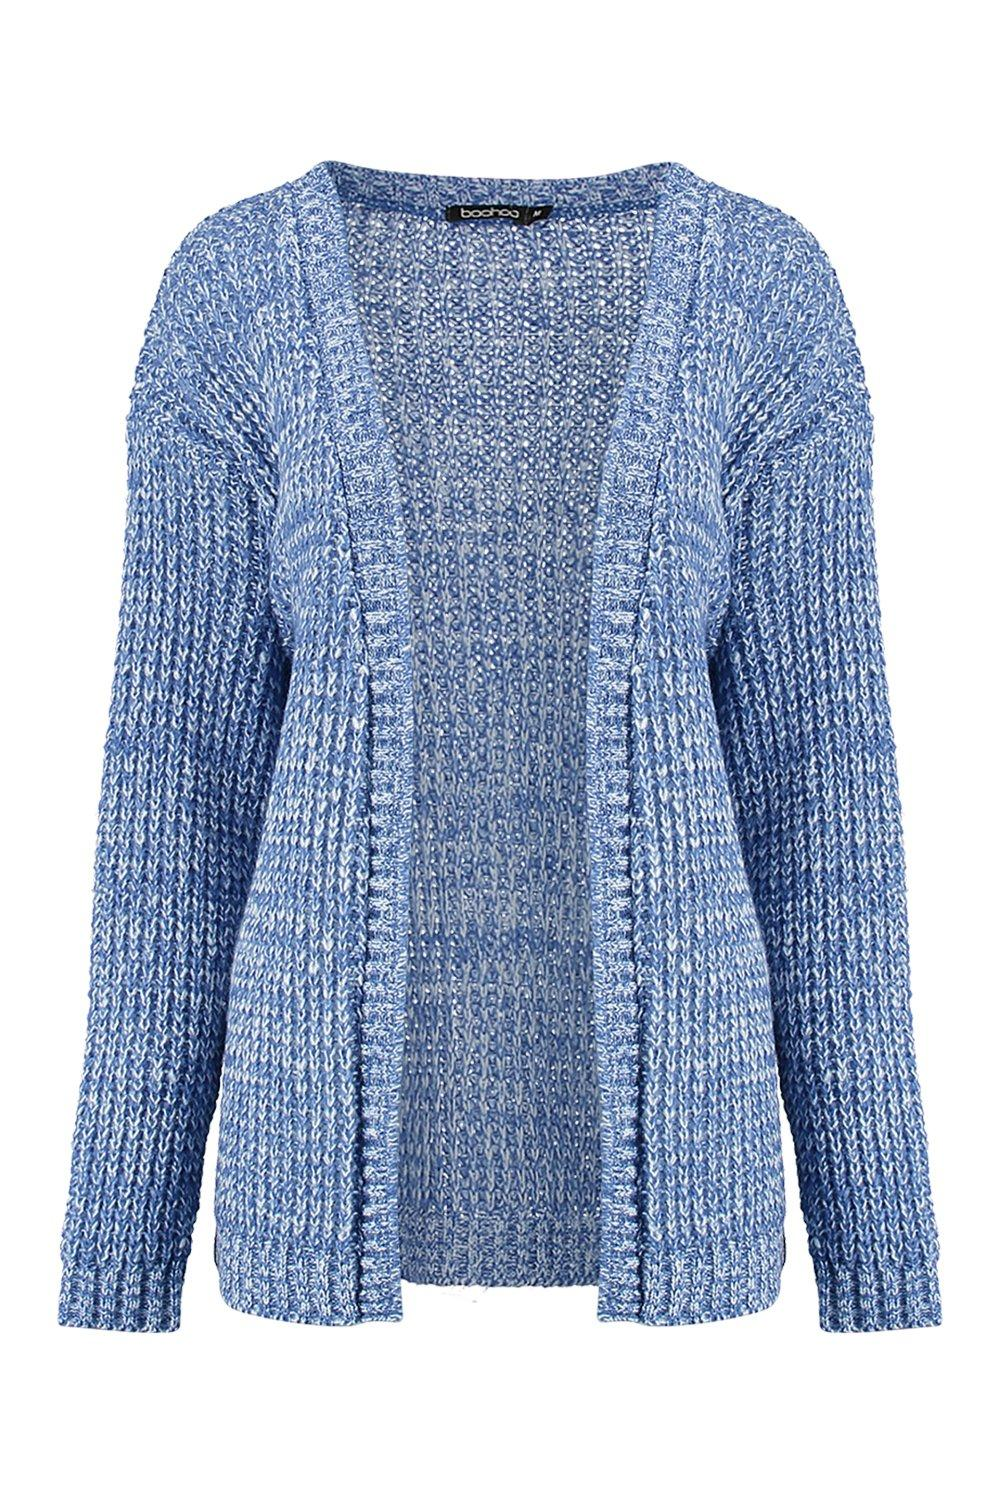 Knitting Pattern For Edge To Edge Cardigan : Boohoo Womens Isadora Edge To Edge Grungy Marl Knit Cardigan eBay